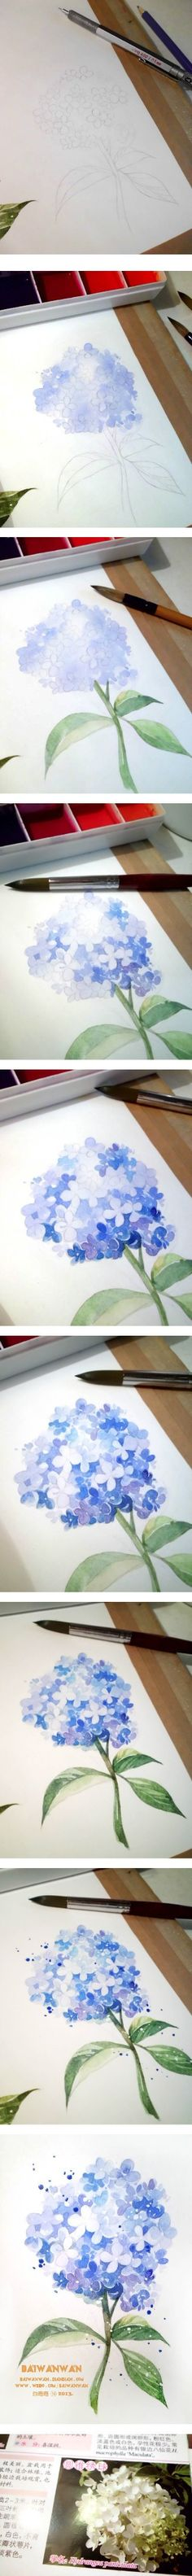 20 Delicate Colorful Watercolor Flowers Painting Tutorials In Images Watercolor Tips, Watercolour Tutorials, Watercolor Techniques, Watercolour Painting, Art Techniques, Watercolor Flowers, Painting & Drawing, Watercolors, Painting Flowers